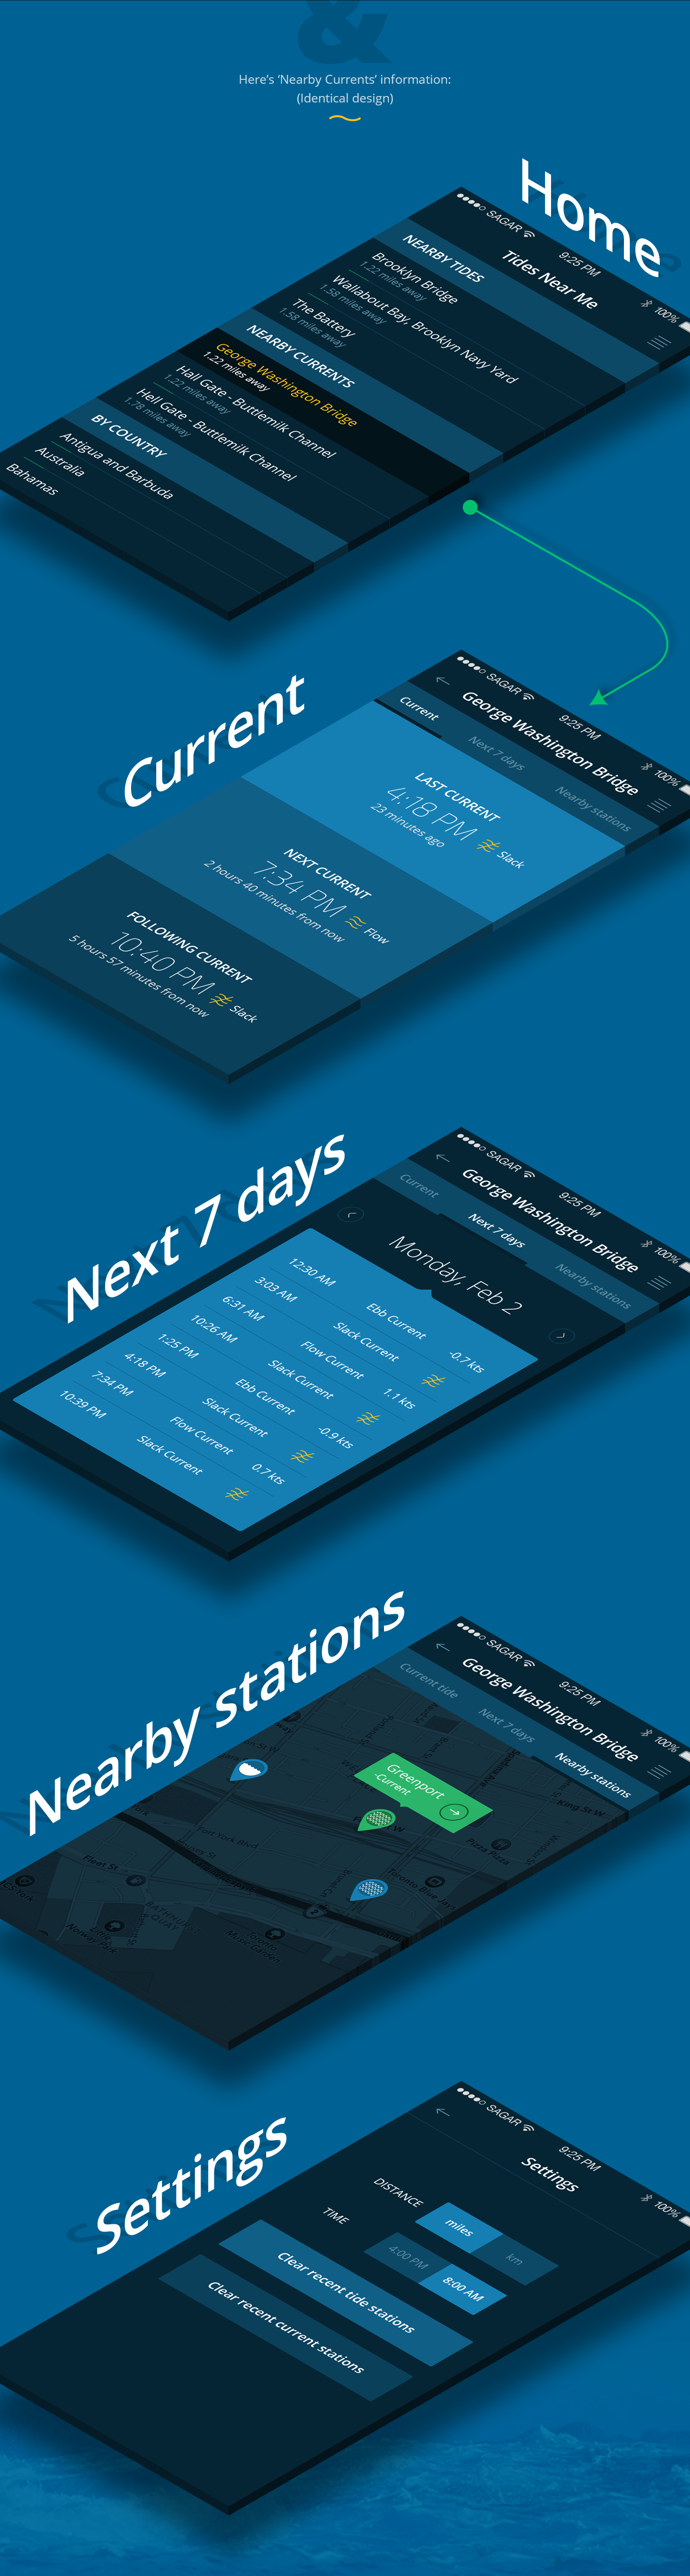 Tides Near Me iOS & Android App on Behance Android